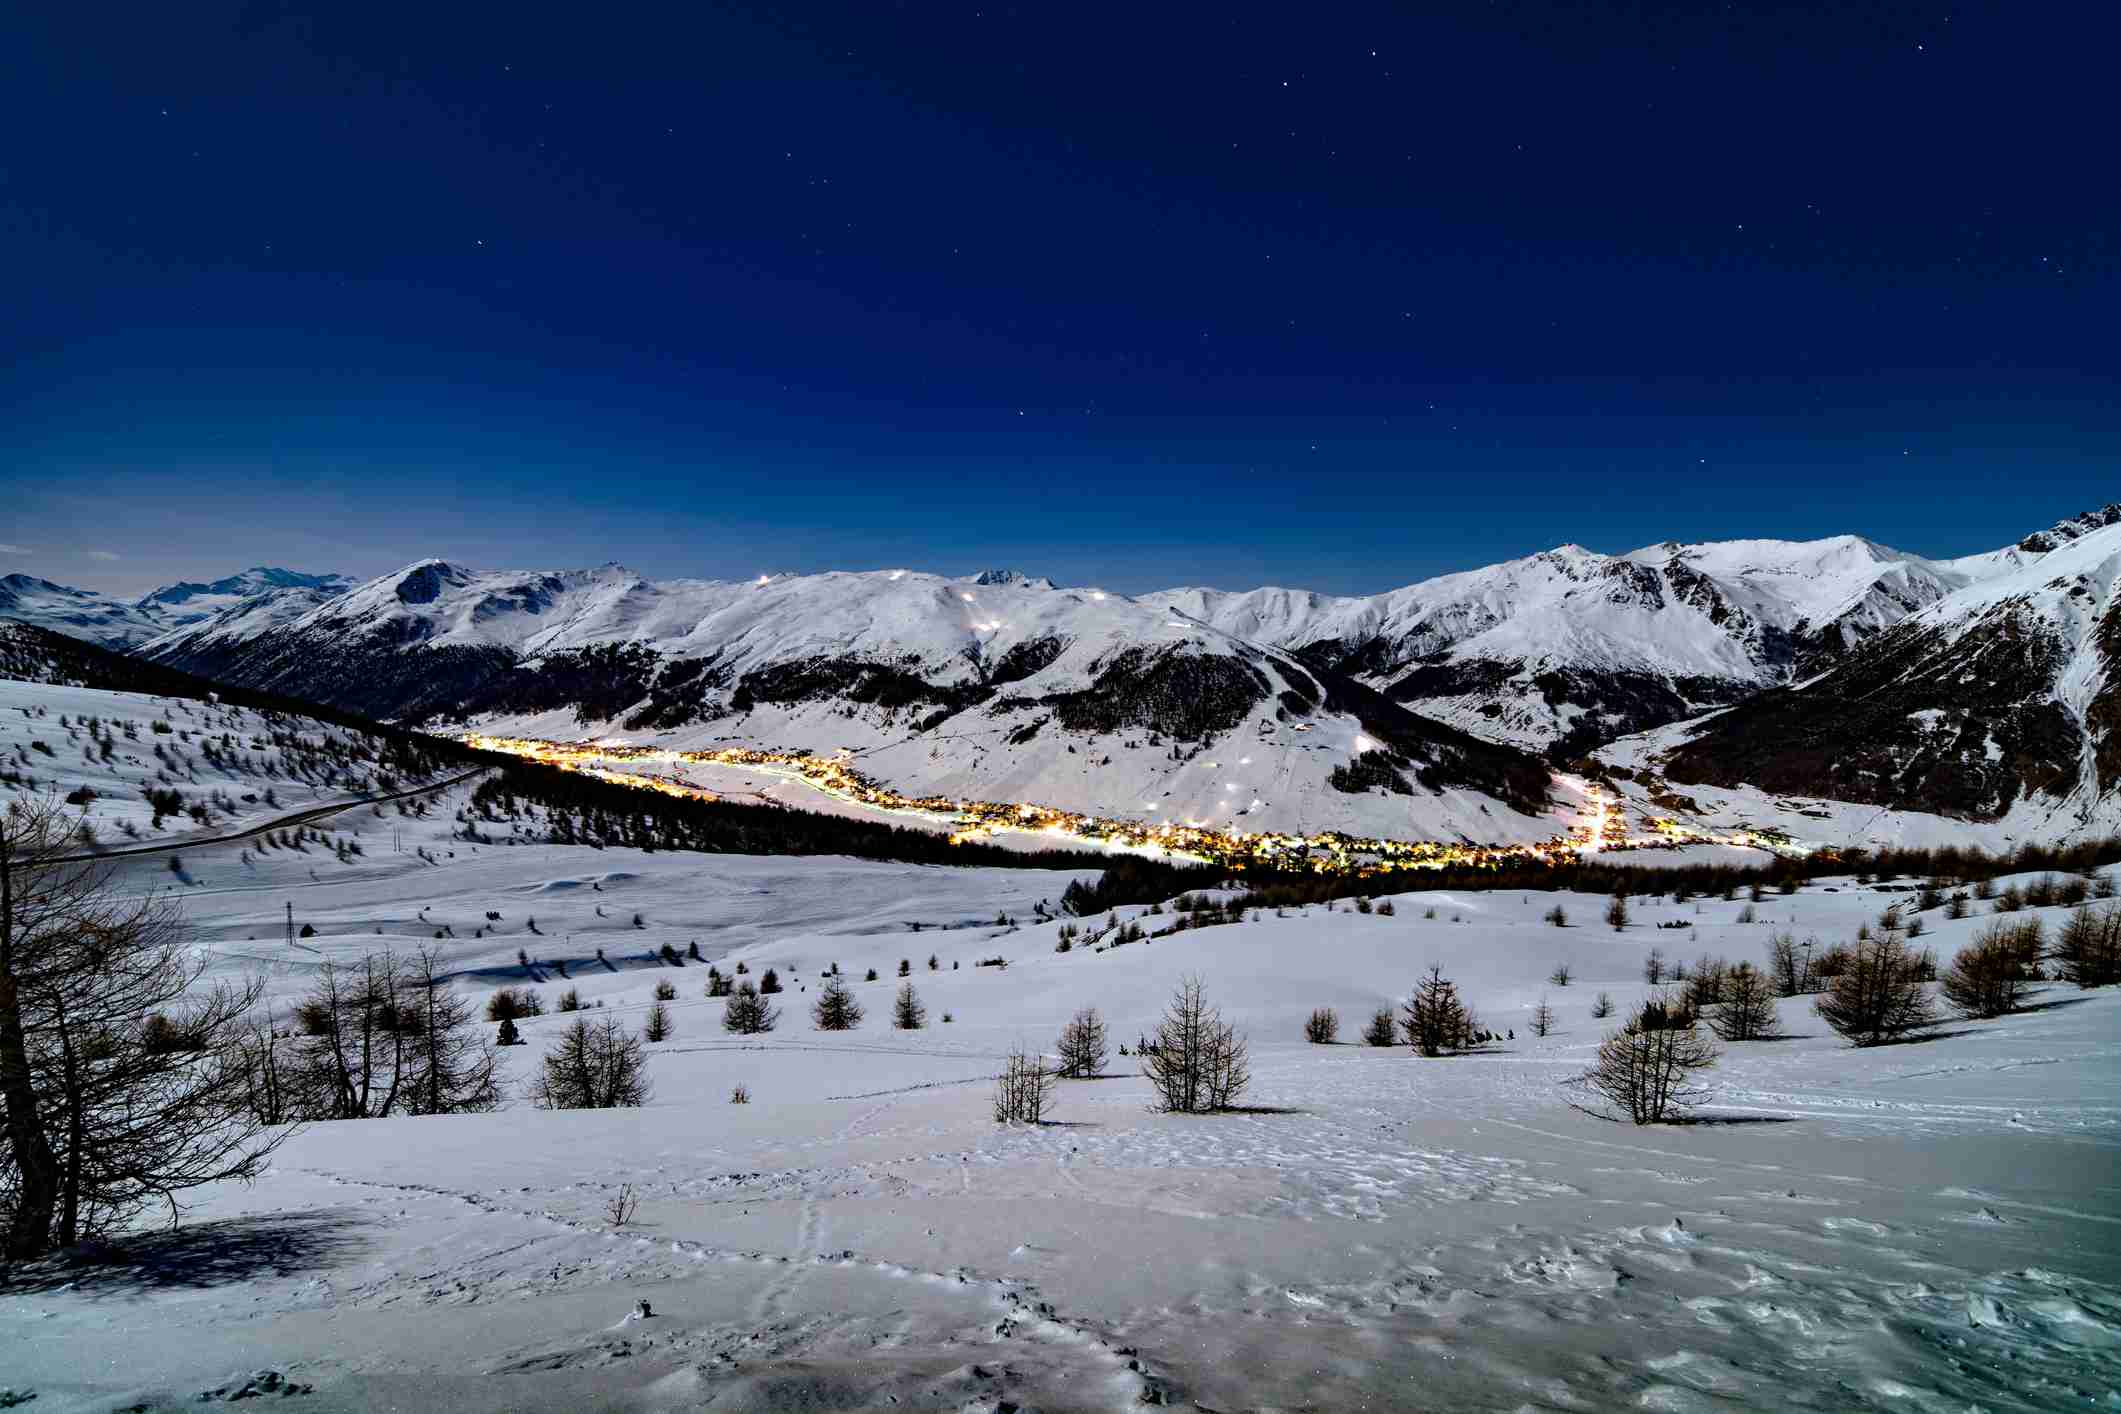 Livigno in the distance at night